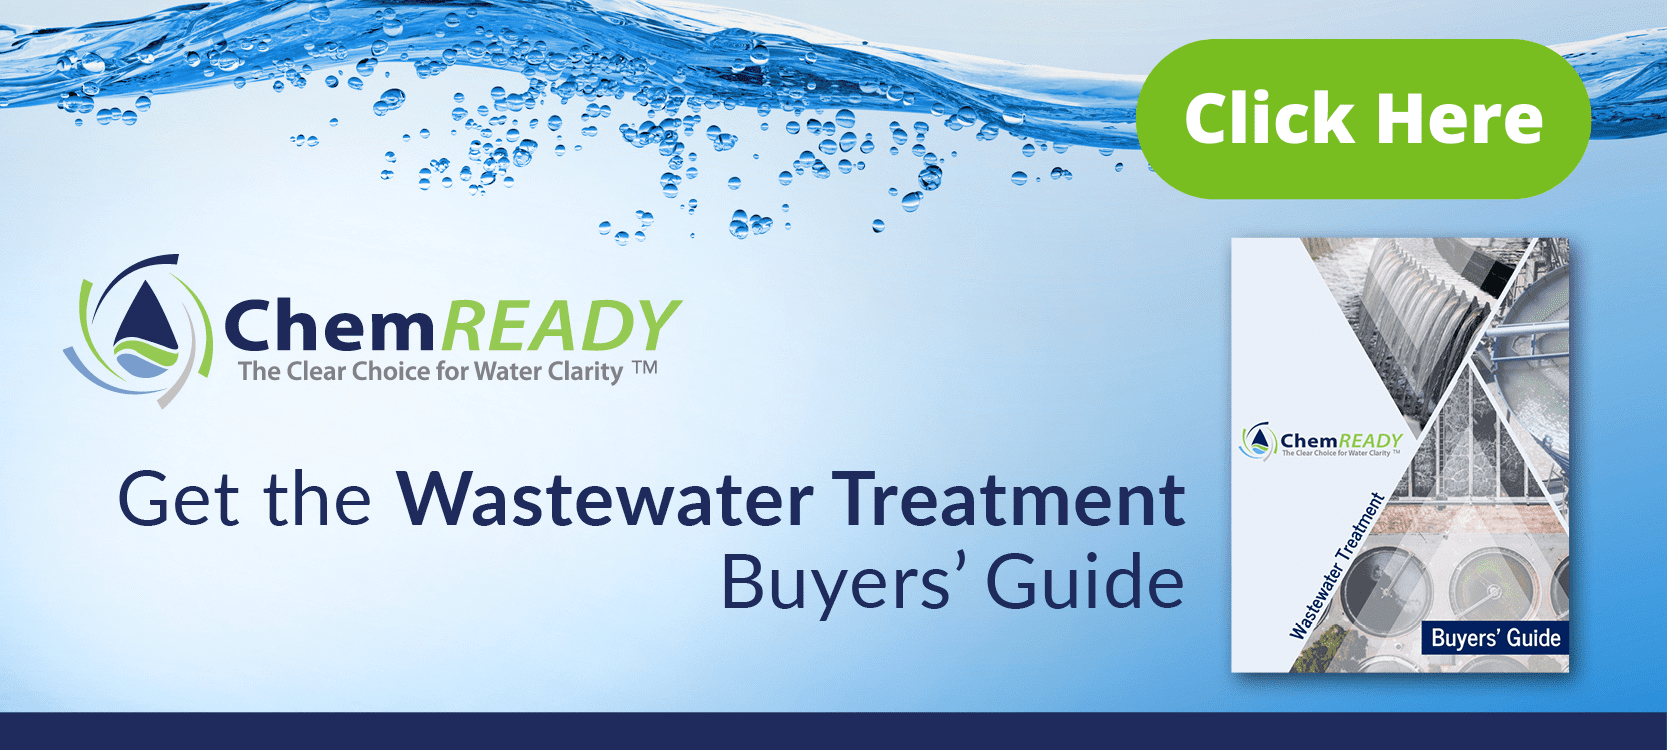 Wastewater-Treatment-Buyers-Guide